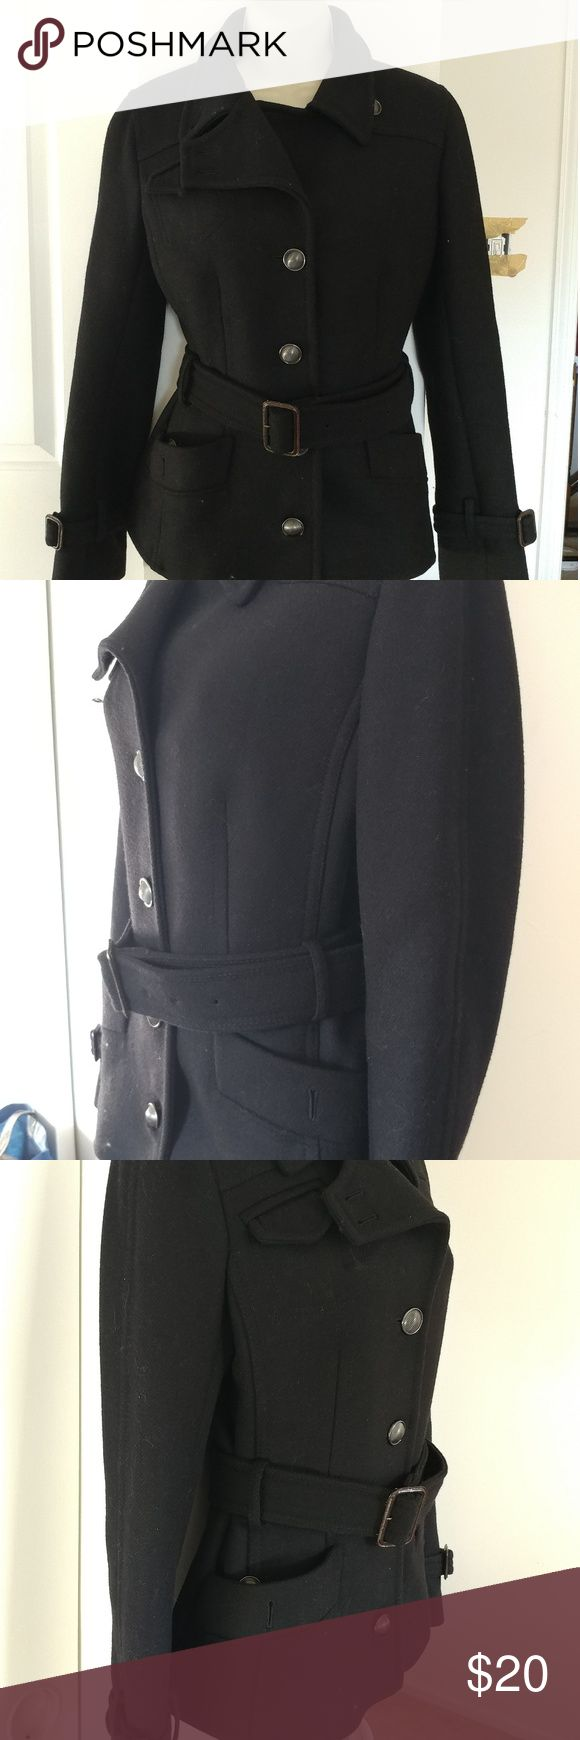 Black fall peacoat This is a Cold Haan size 2 fall peacoat. Barely worn and priced to sell. Feel free go message if you have an offer or any questions. Cole Haan Jackets & Coats Pea Coats